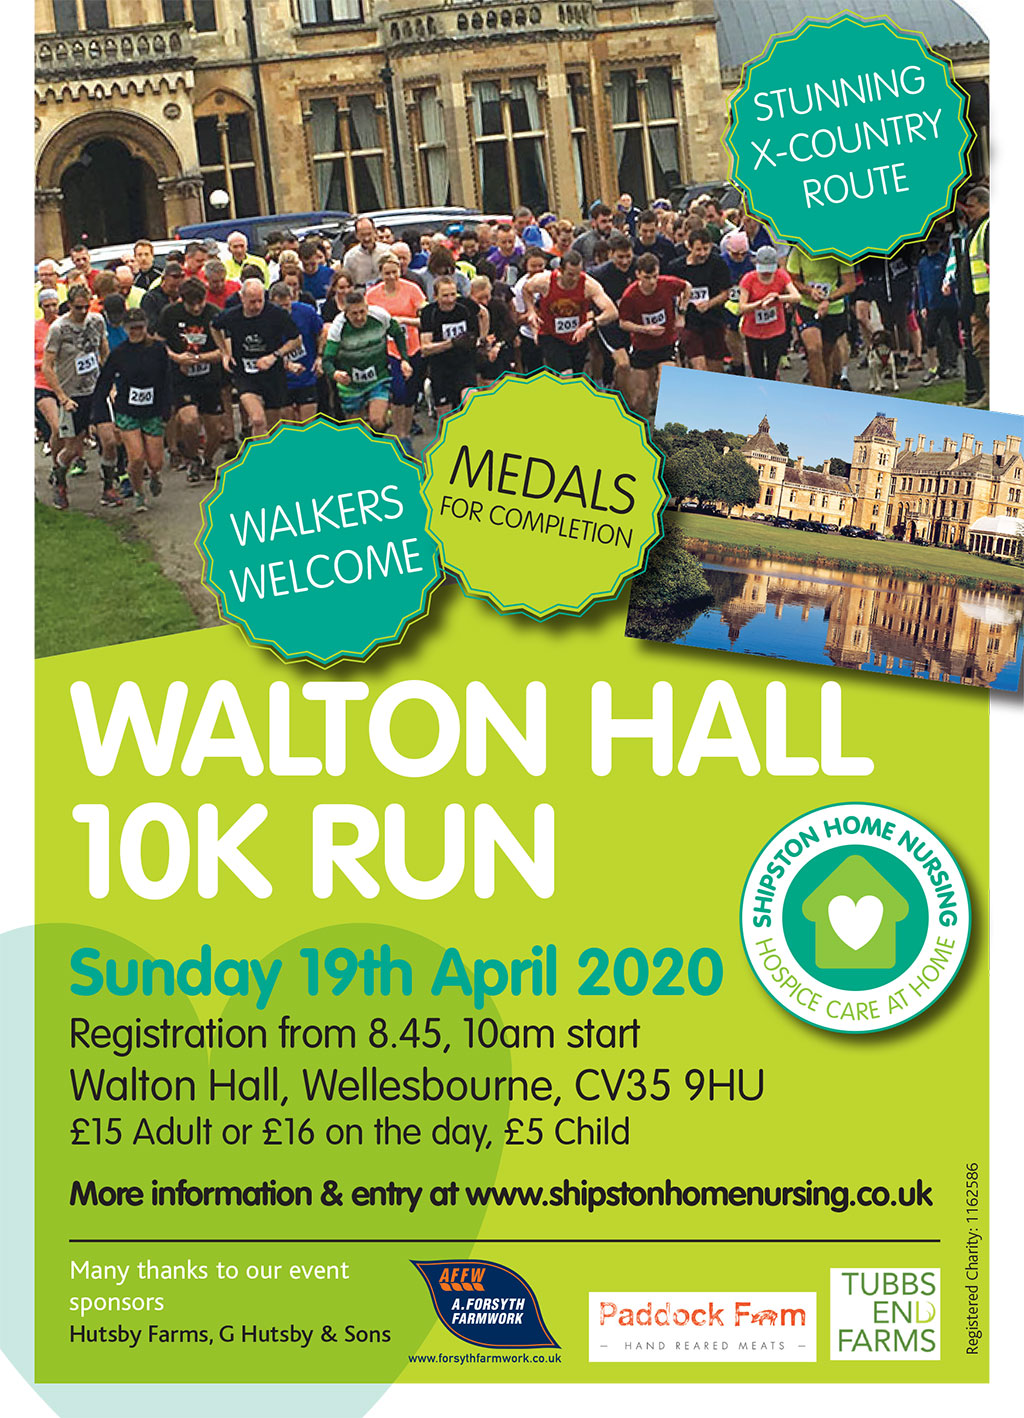 10k X-Country Run/Walk for Shipston Home Nursing